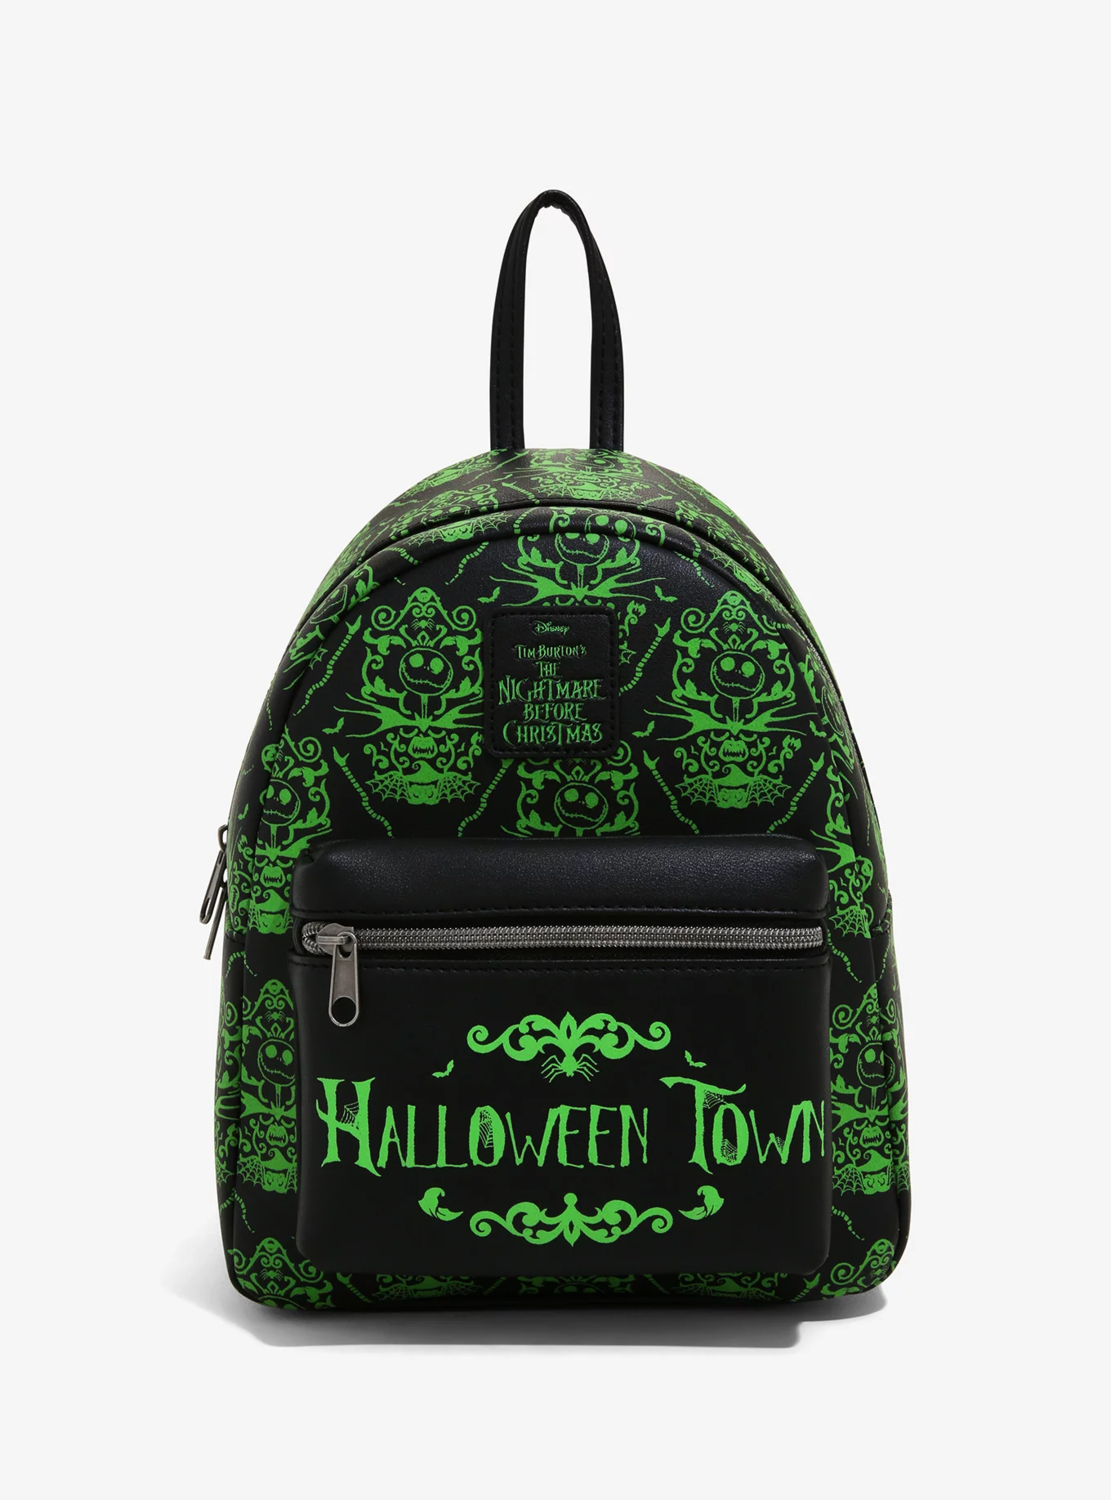 Bolsa Mochila NIGHTMARE BEFORE CHRISTMAS HALLOWEEN